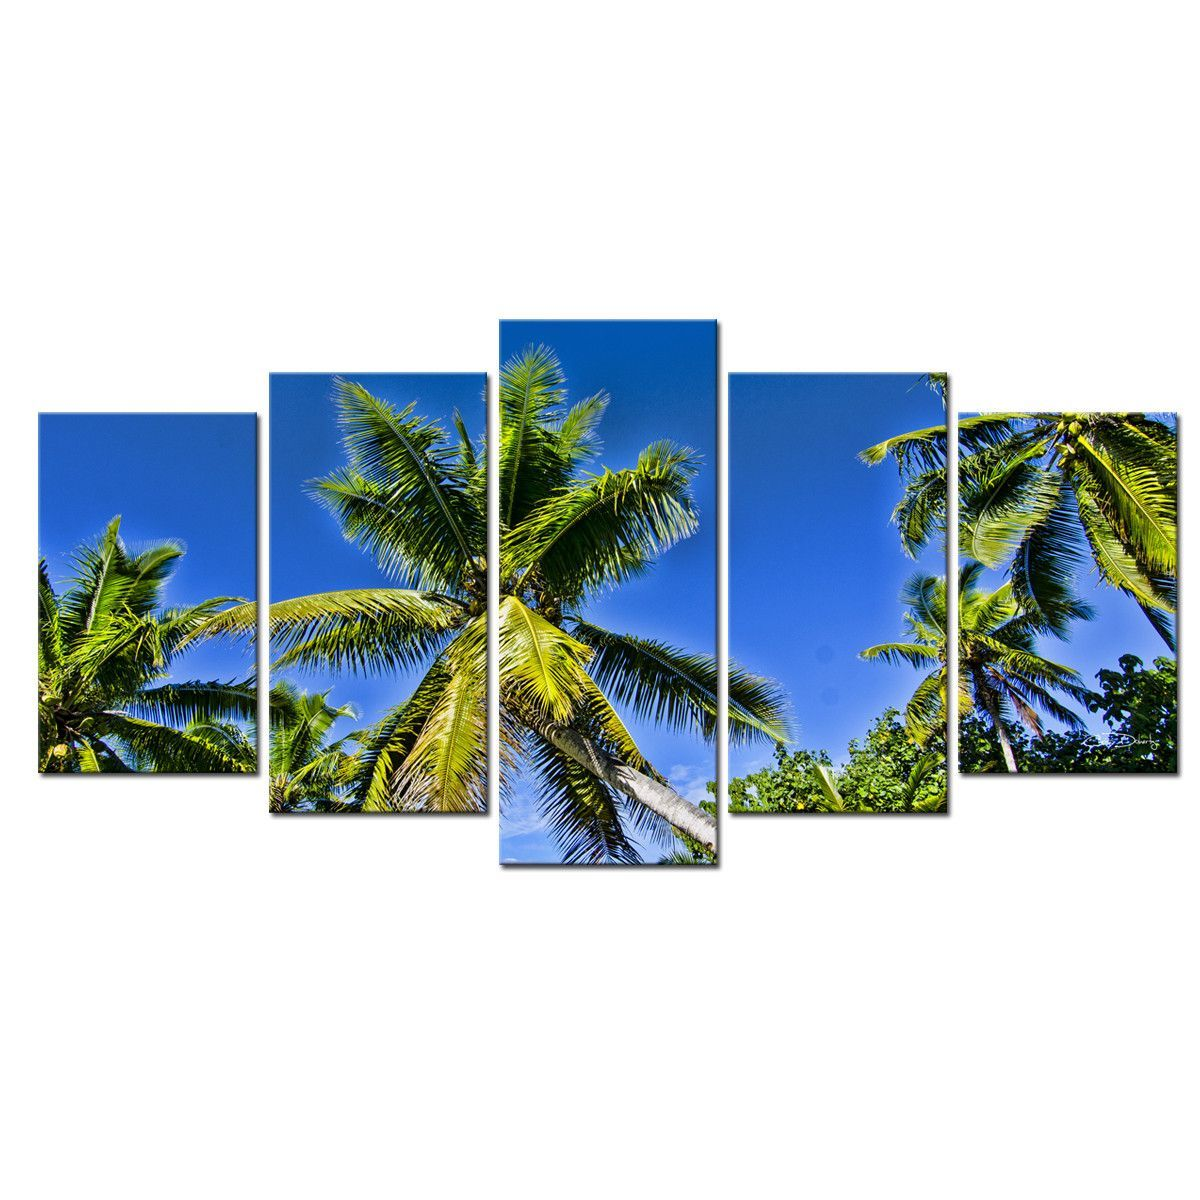 Niue palmsu by christopher doherty piece photographic printt on